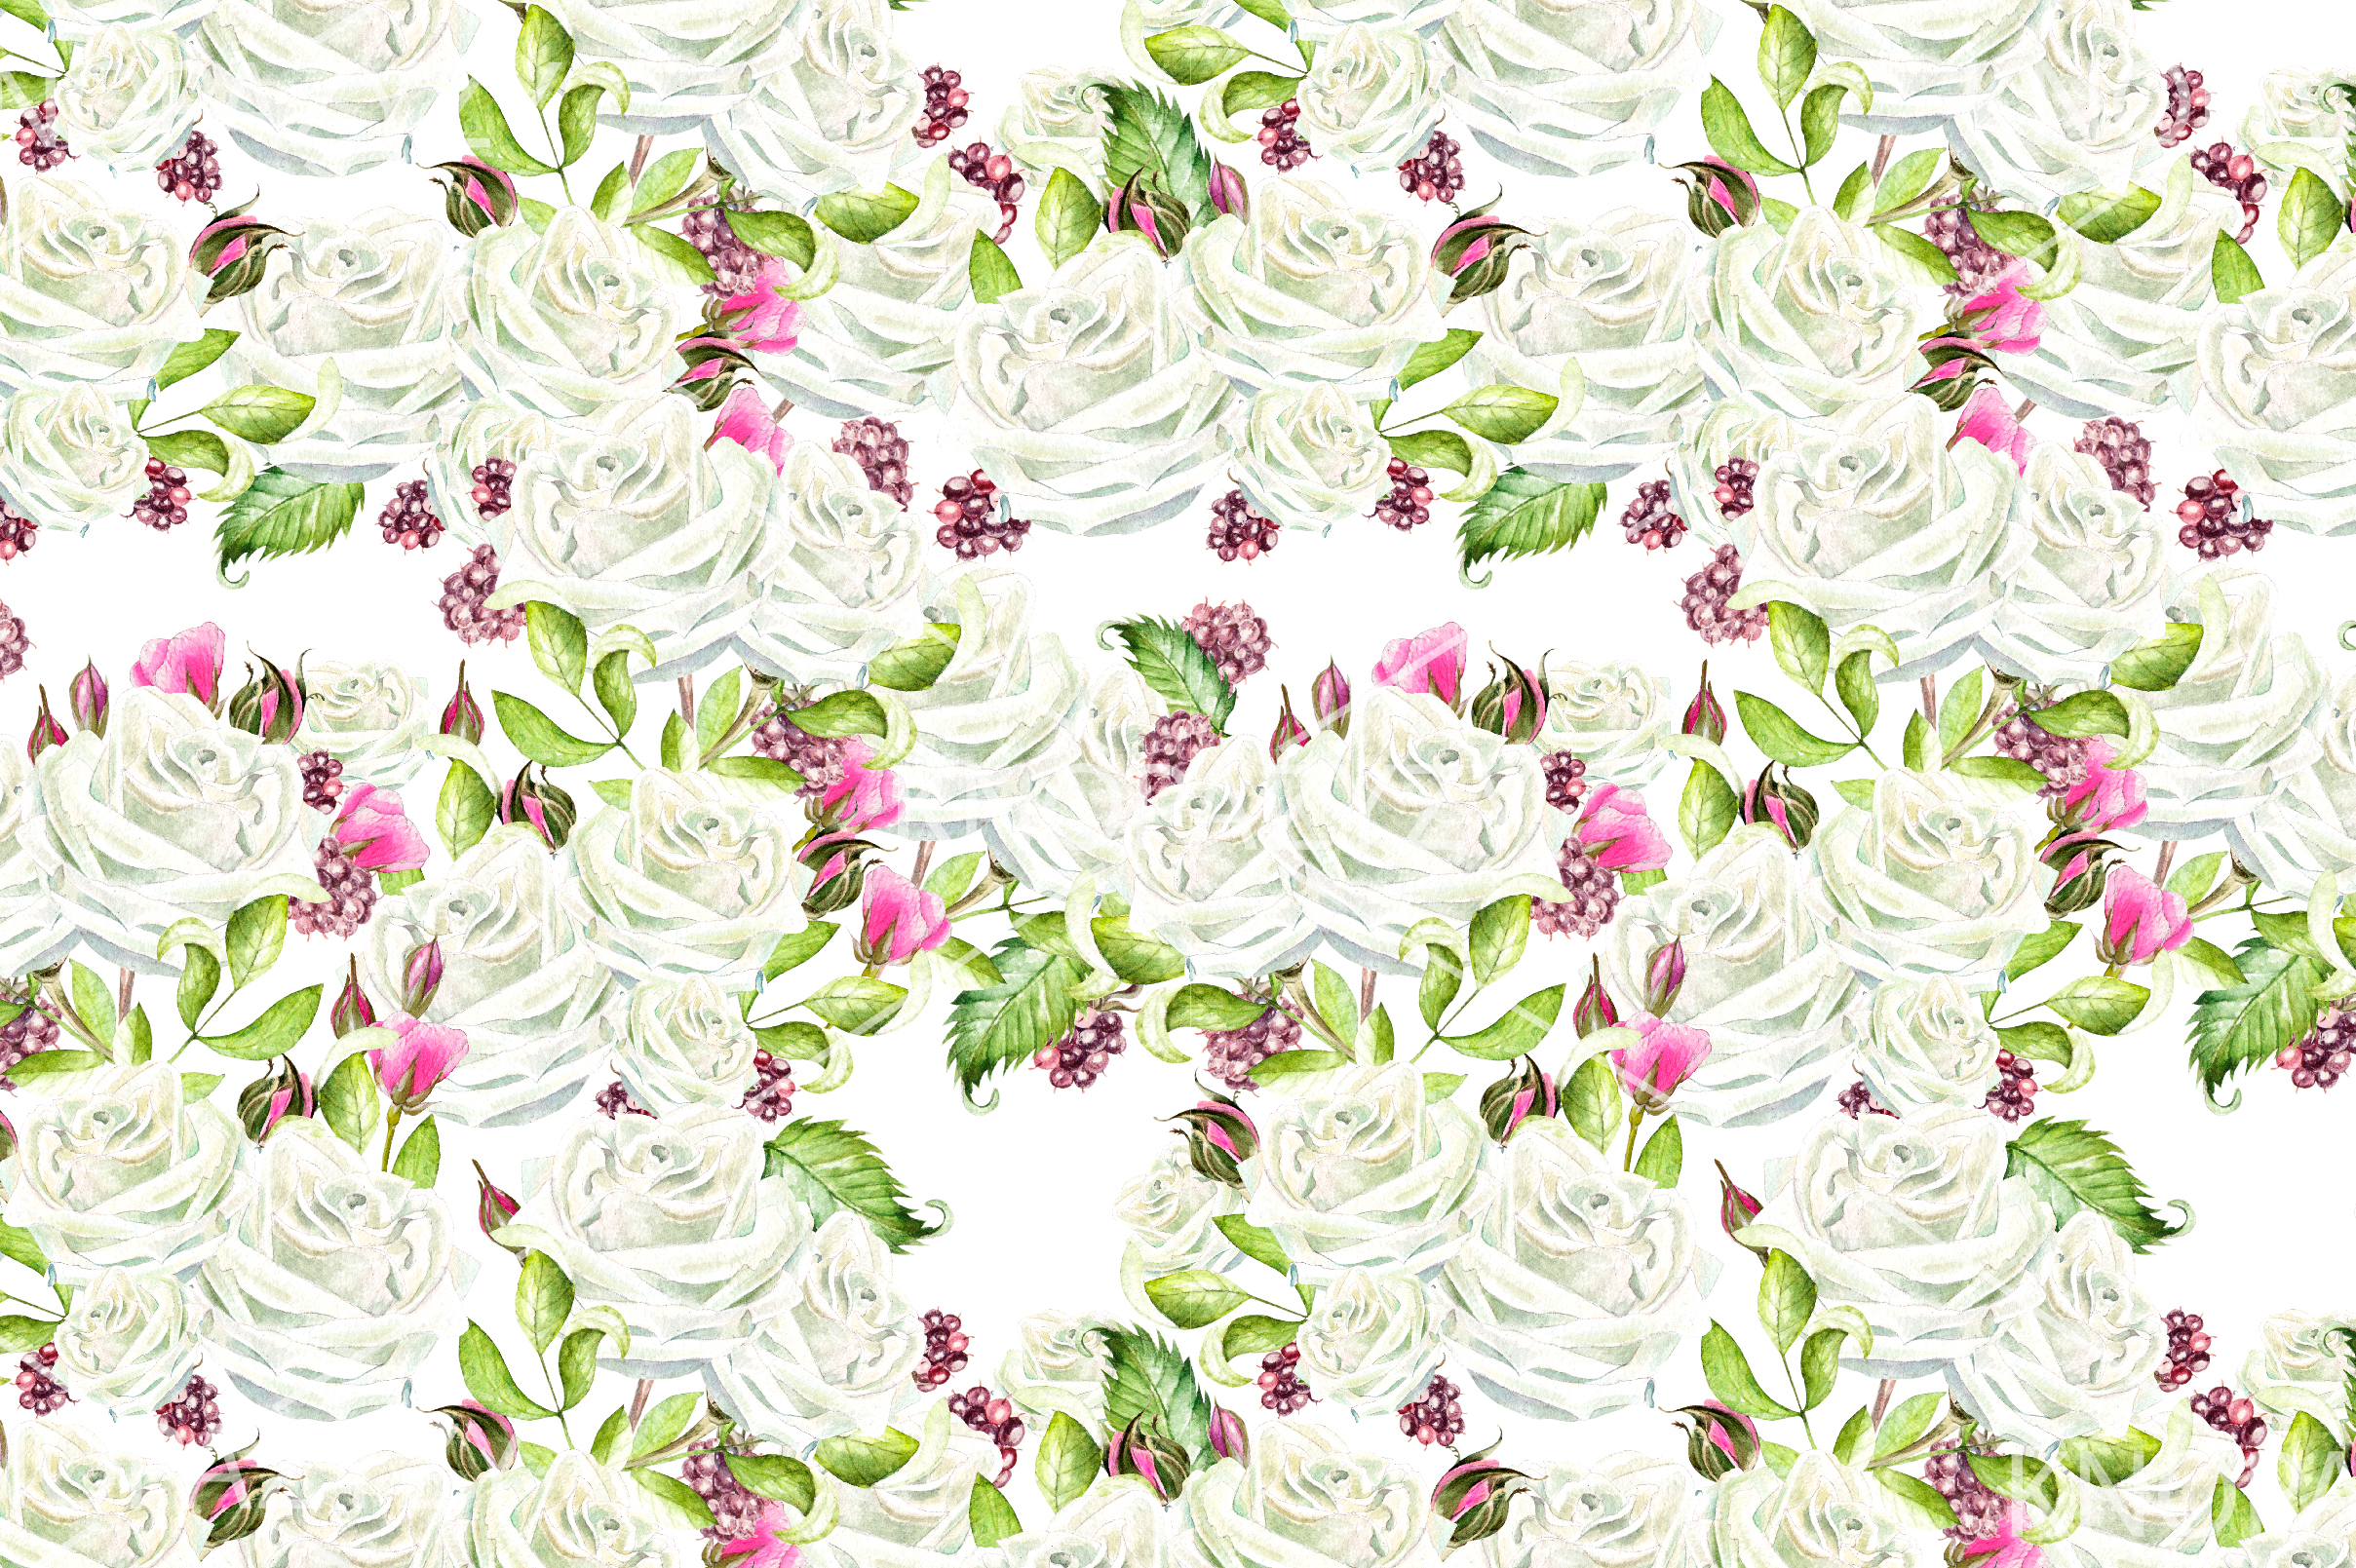 15 Hand Drawn Watercolor PATTERNS example image 6